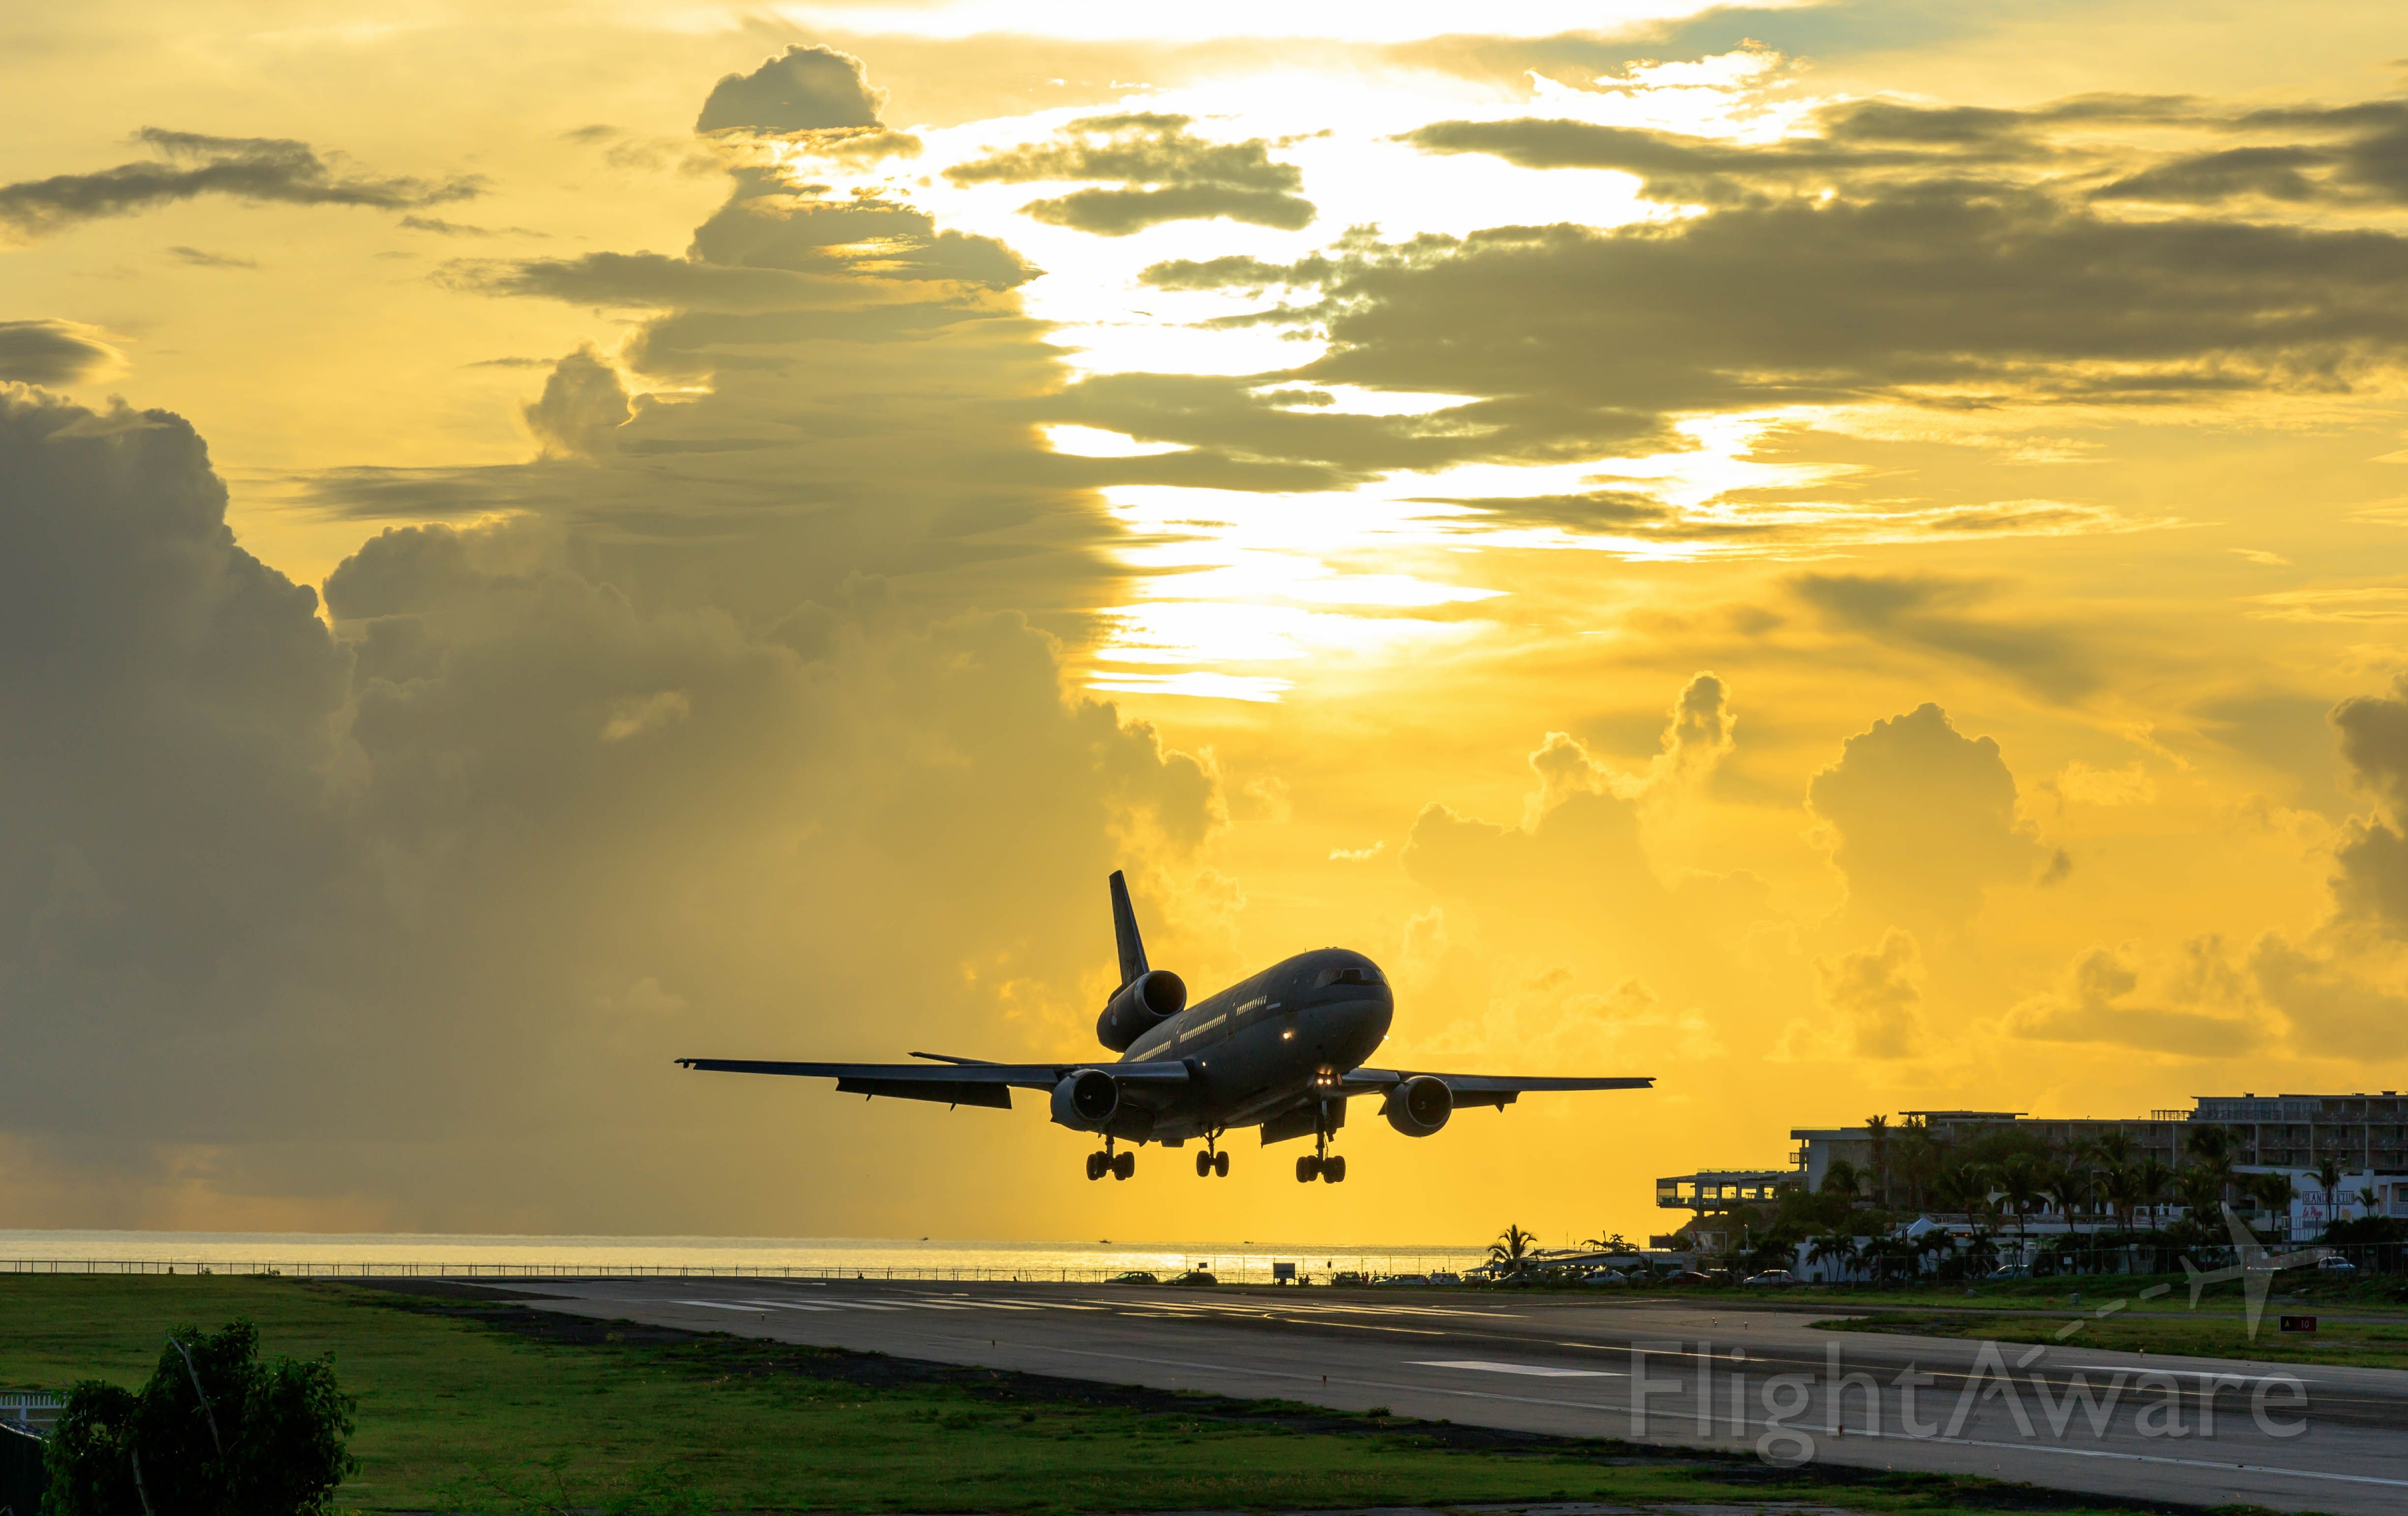 McDonnell Douglas DC-10 (T264) - Koninklijke Marine Royal Netherlands AirForce K-DC10 Call sign NAF40 seen landing at TNCM St Maarten at sunset with some extra troops from the 21 Raiding Squadron and supplies on board for our region. 07/09/2019